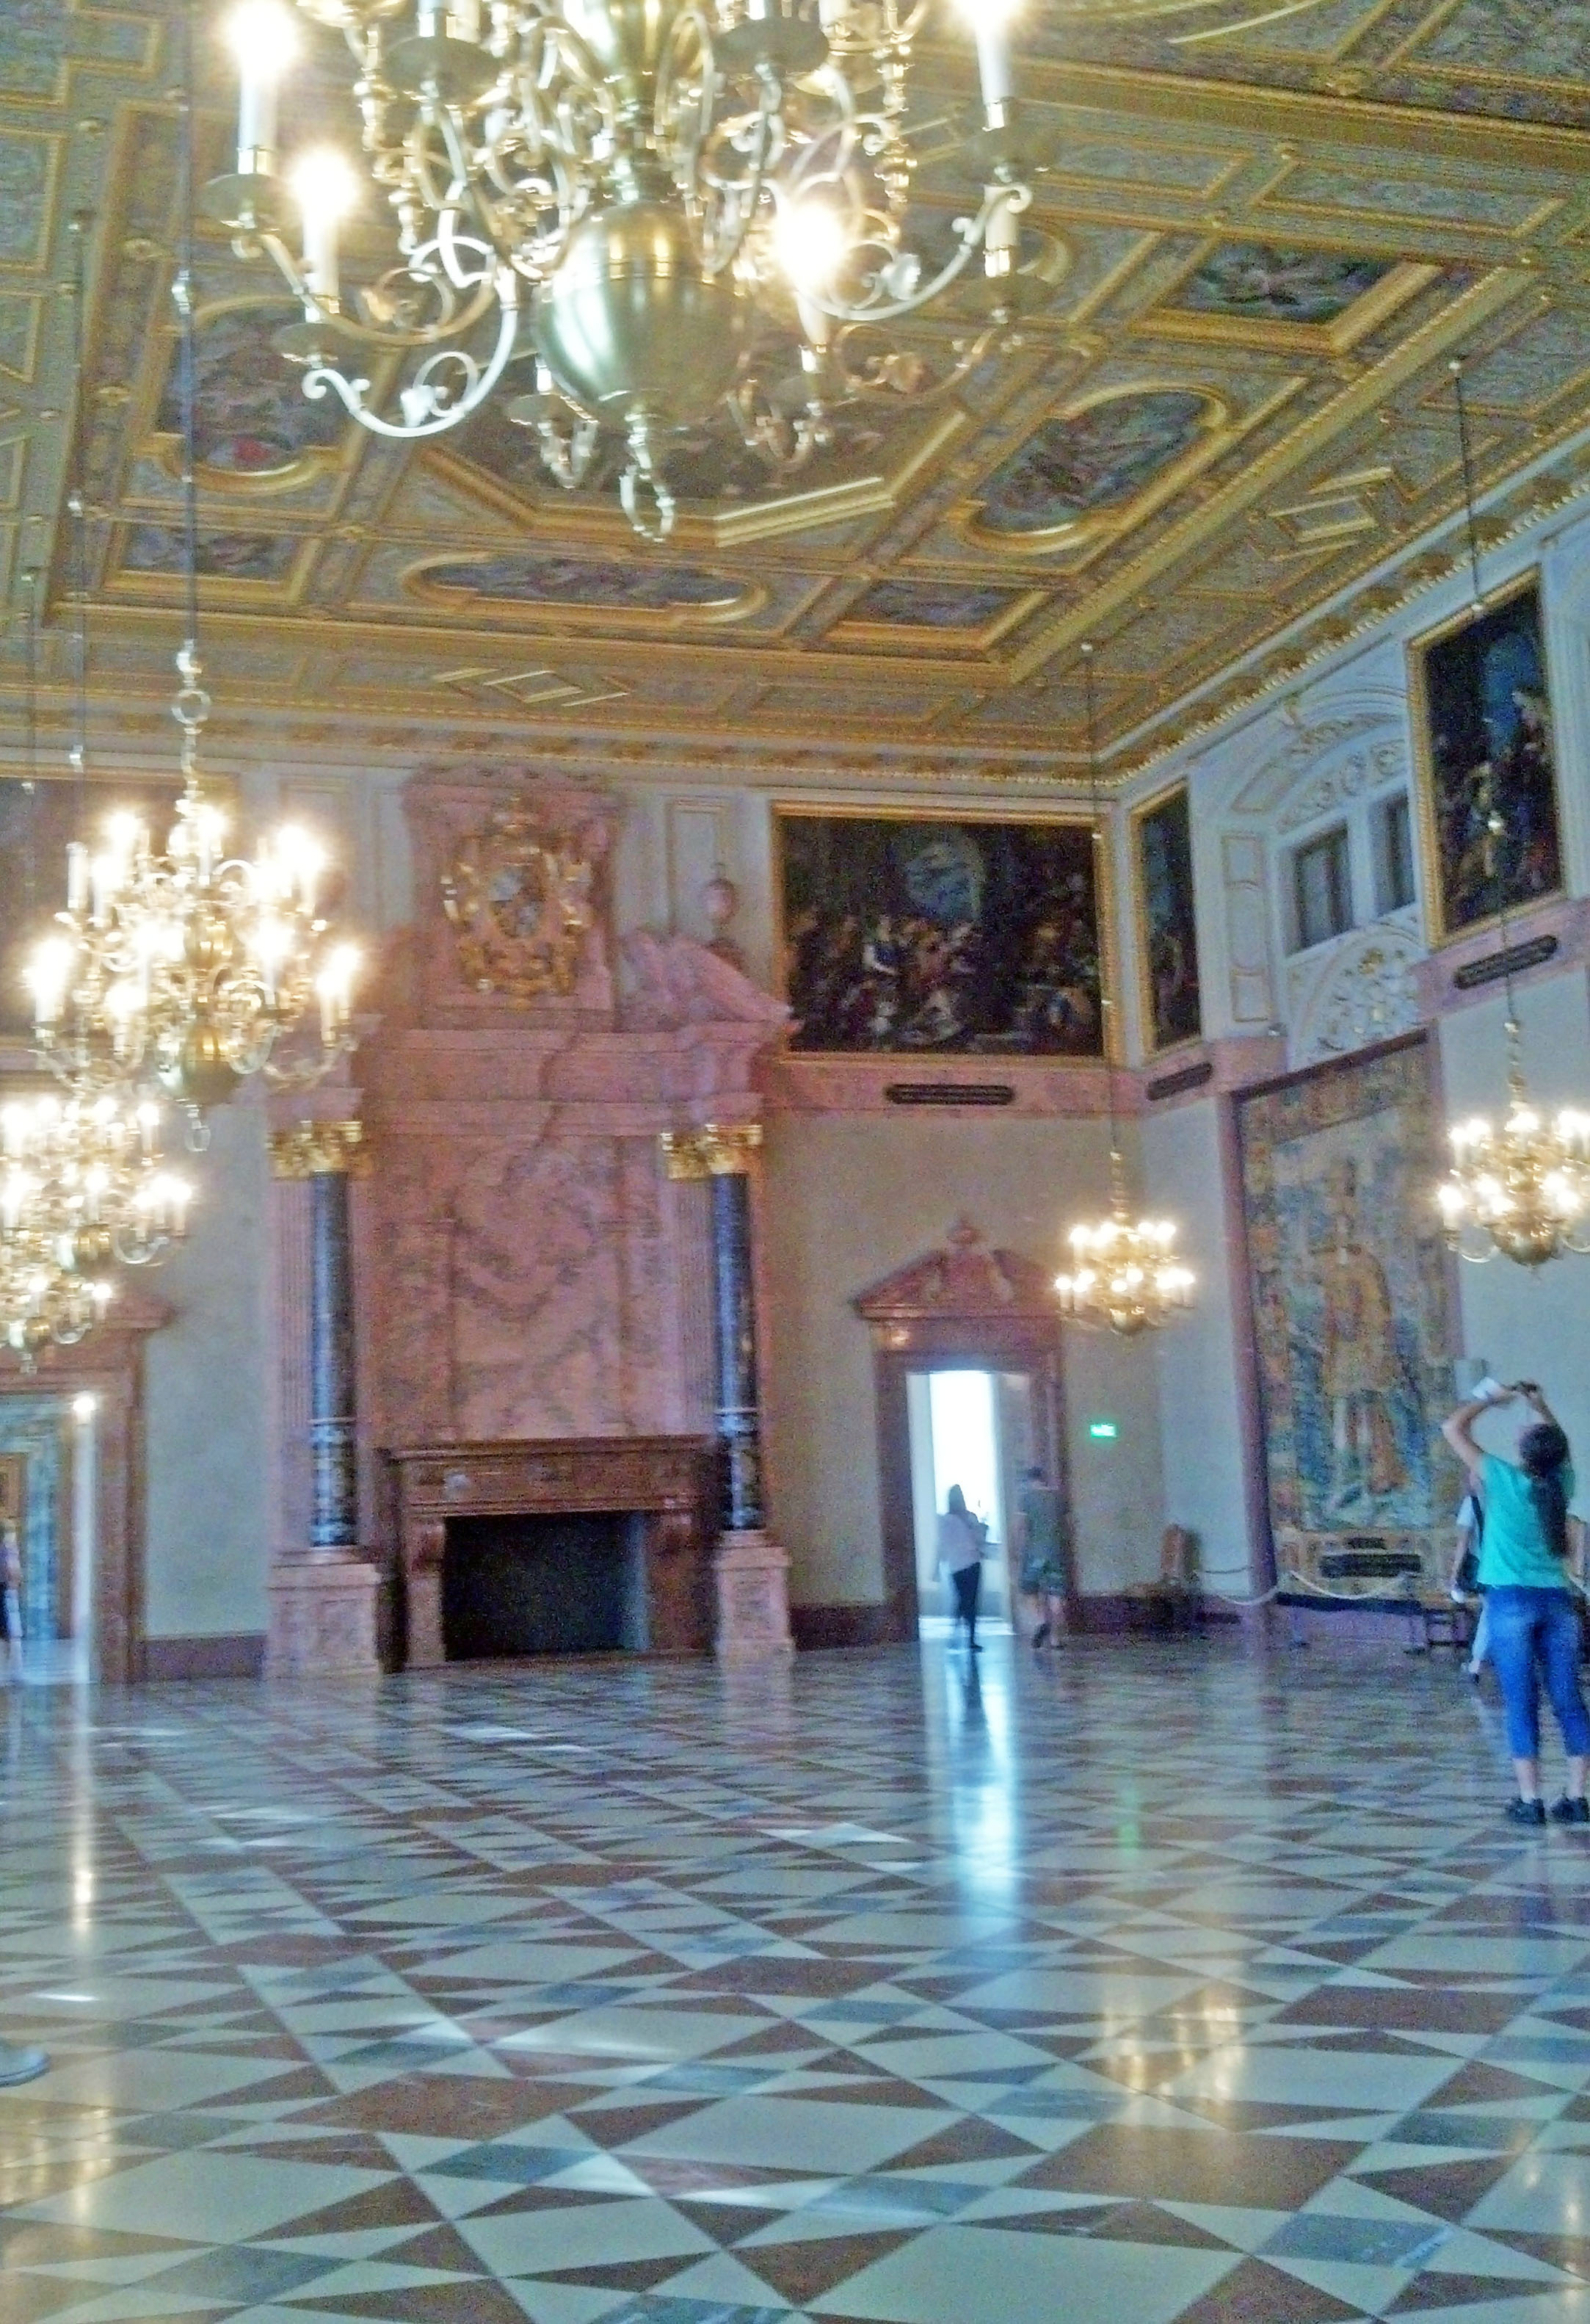 Imperial Hall in the Residenz.